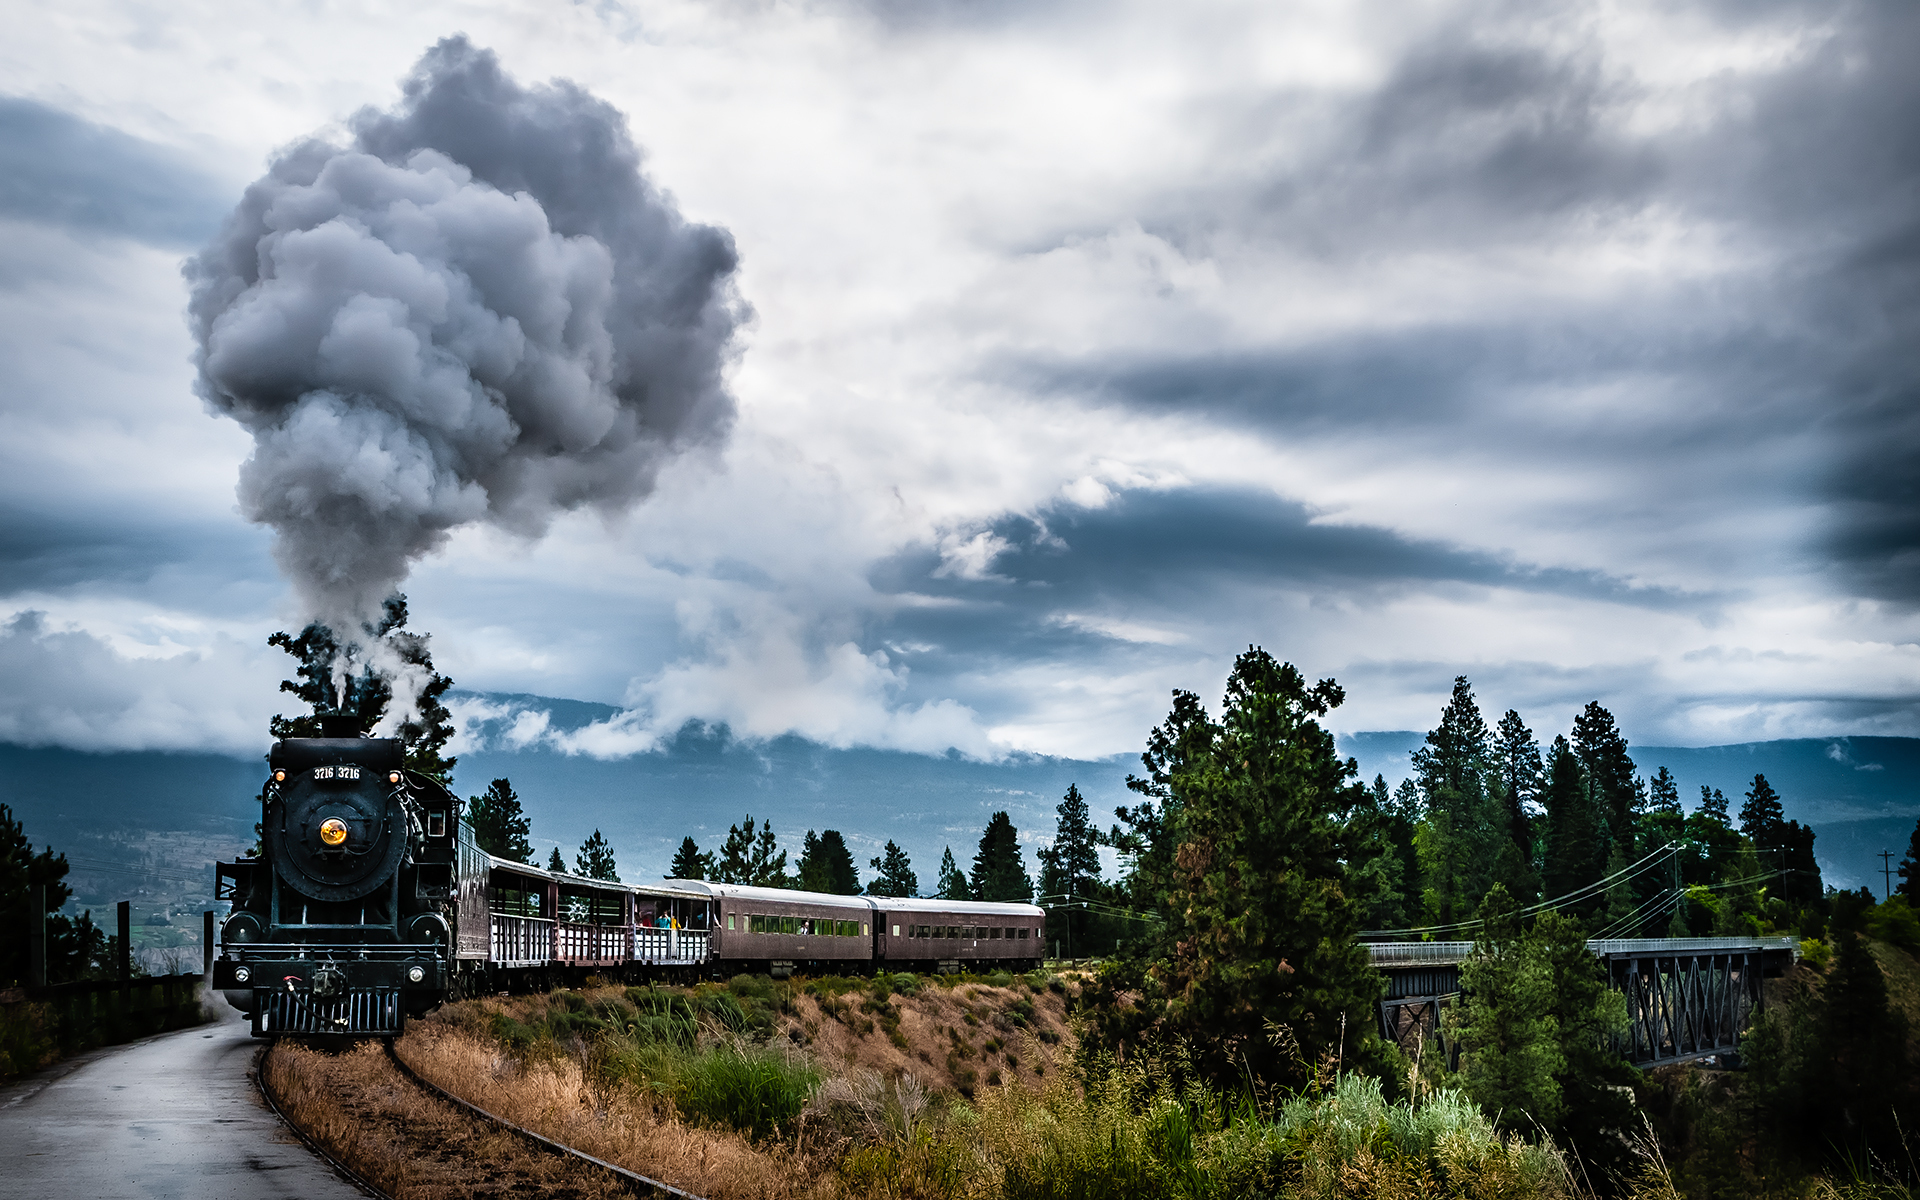 Retro steam train in Canada wallpapers and images   wallpapers 1920x1200